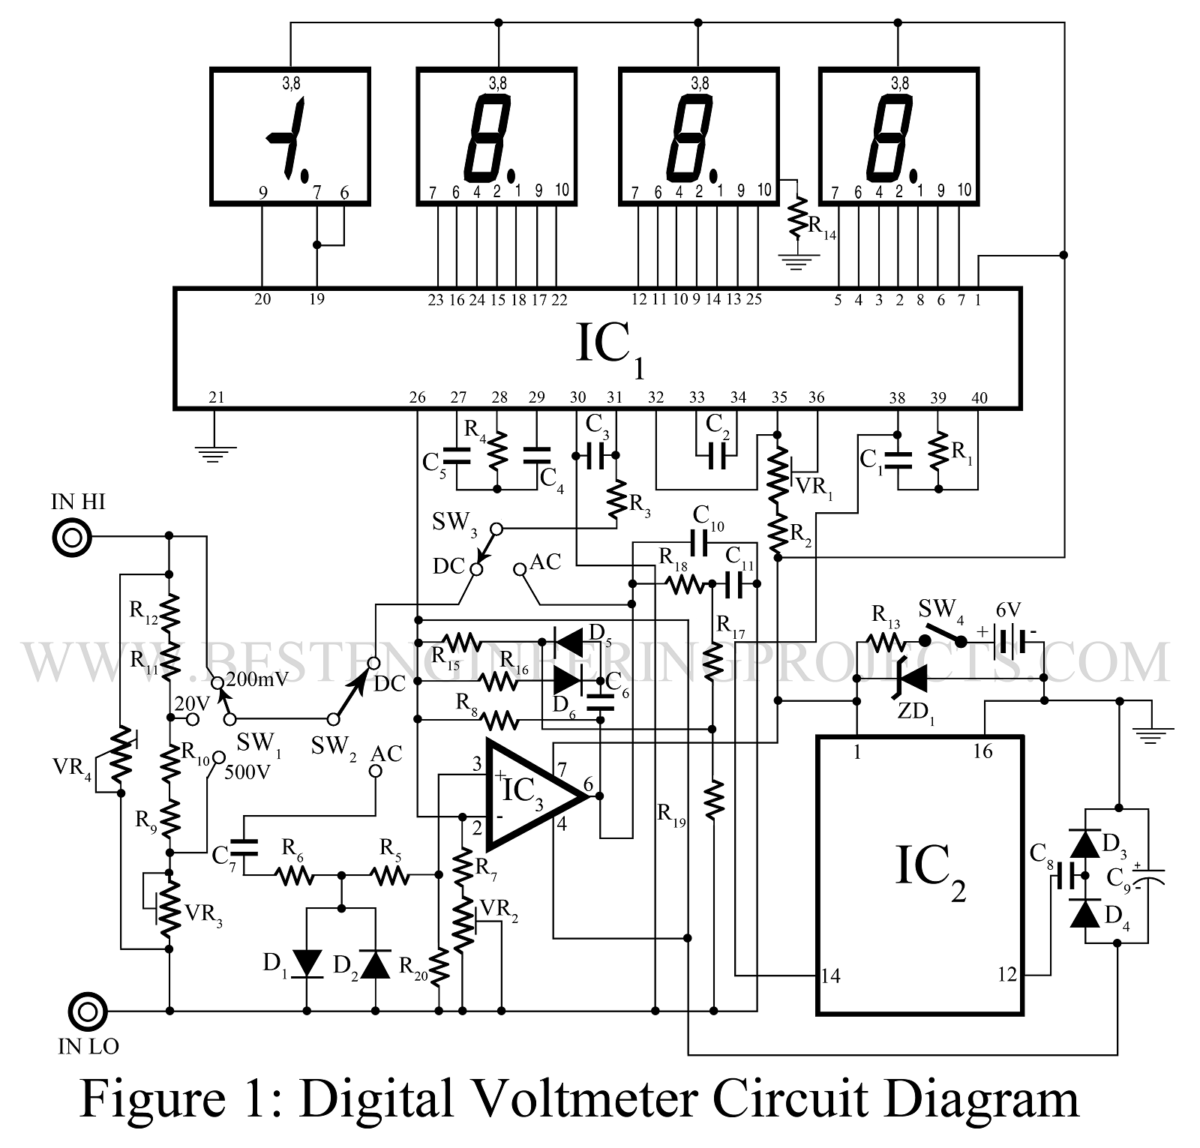 digital electric meter wiring diagram 2010 f150 xlt radio voltmeter dvm circuit using icl 7107